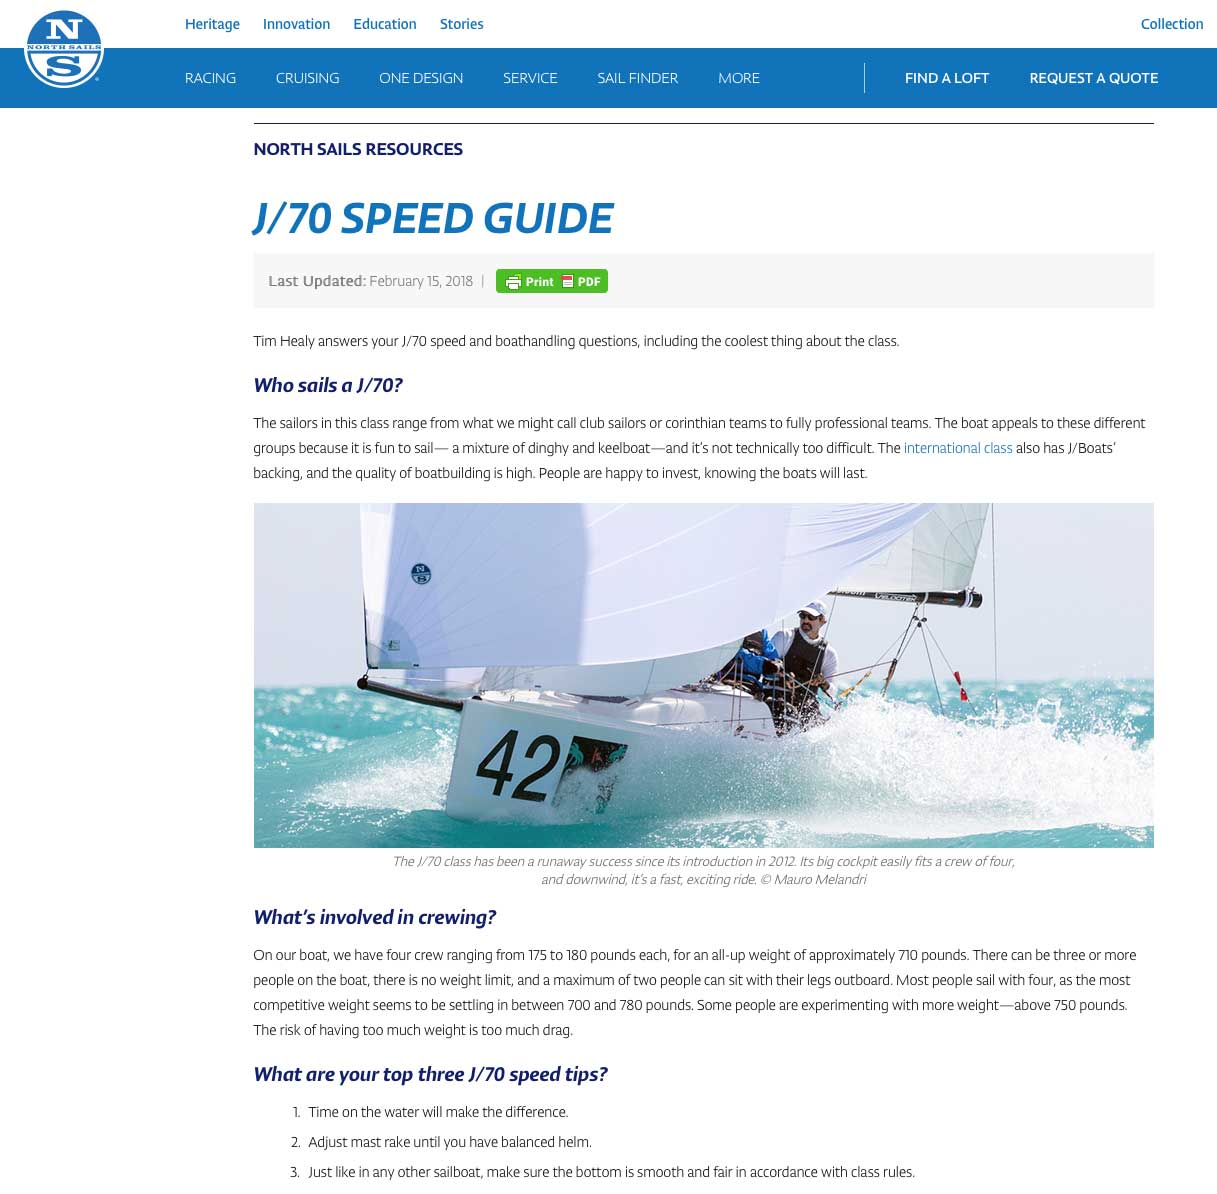 North Sails J/70 Speed Guide